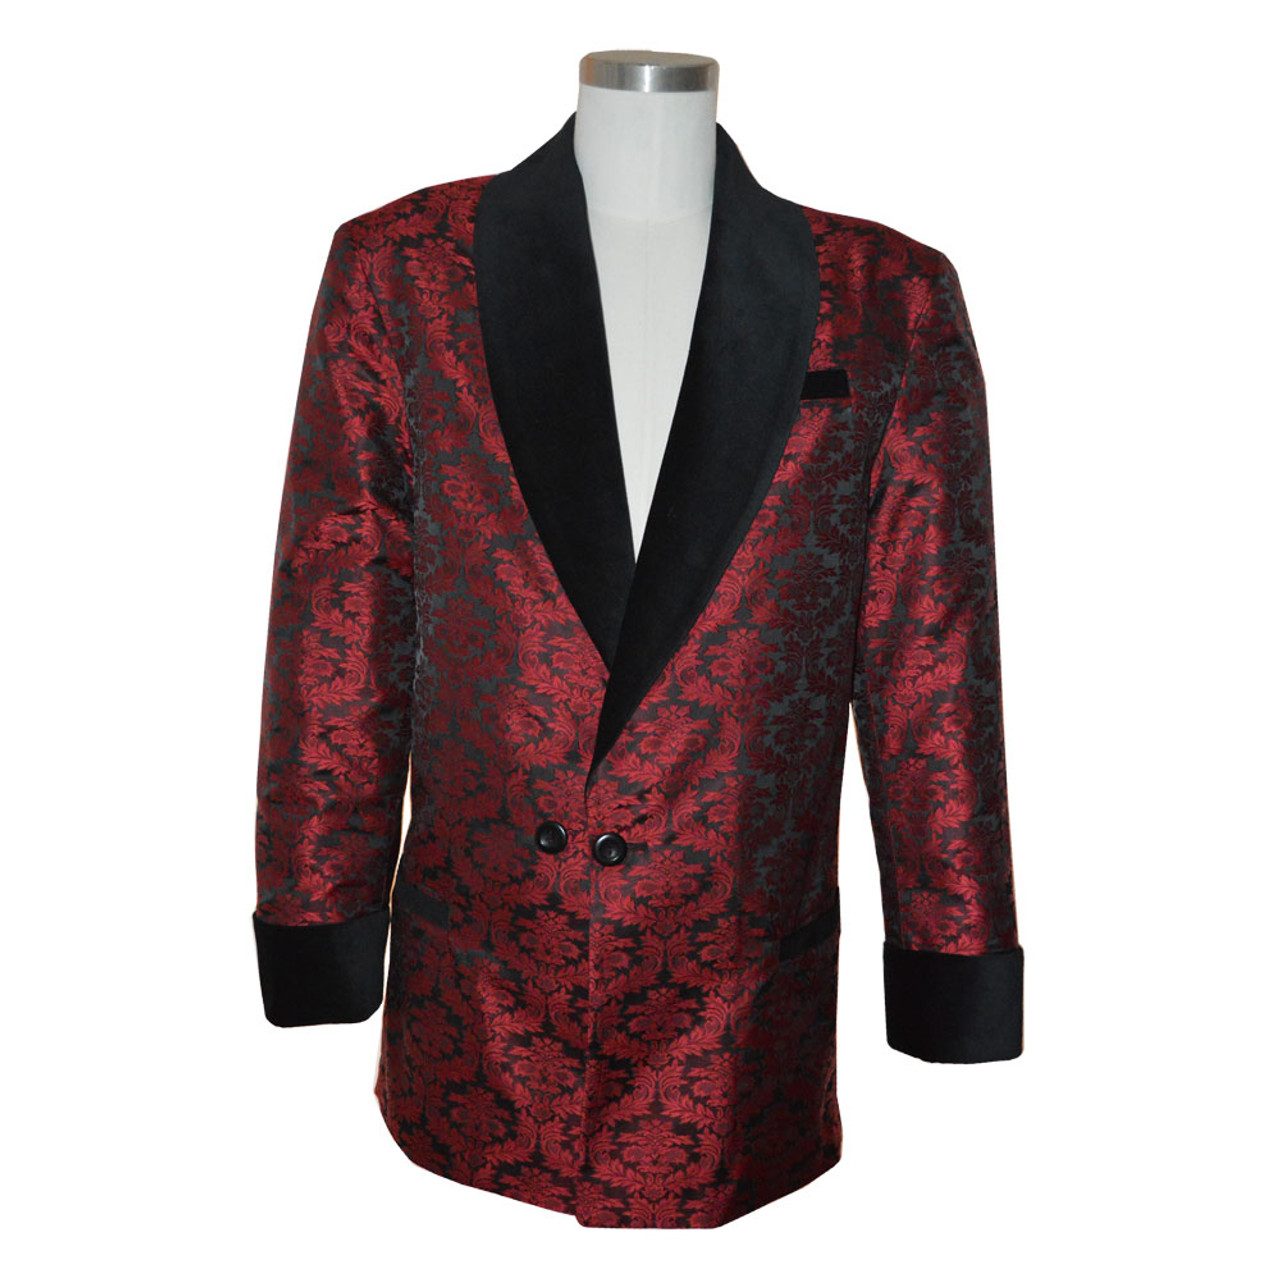 b253c772c Men's Wine Brocade Smoking Jacket